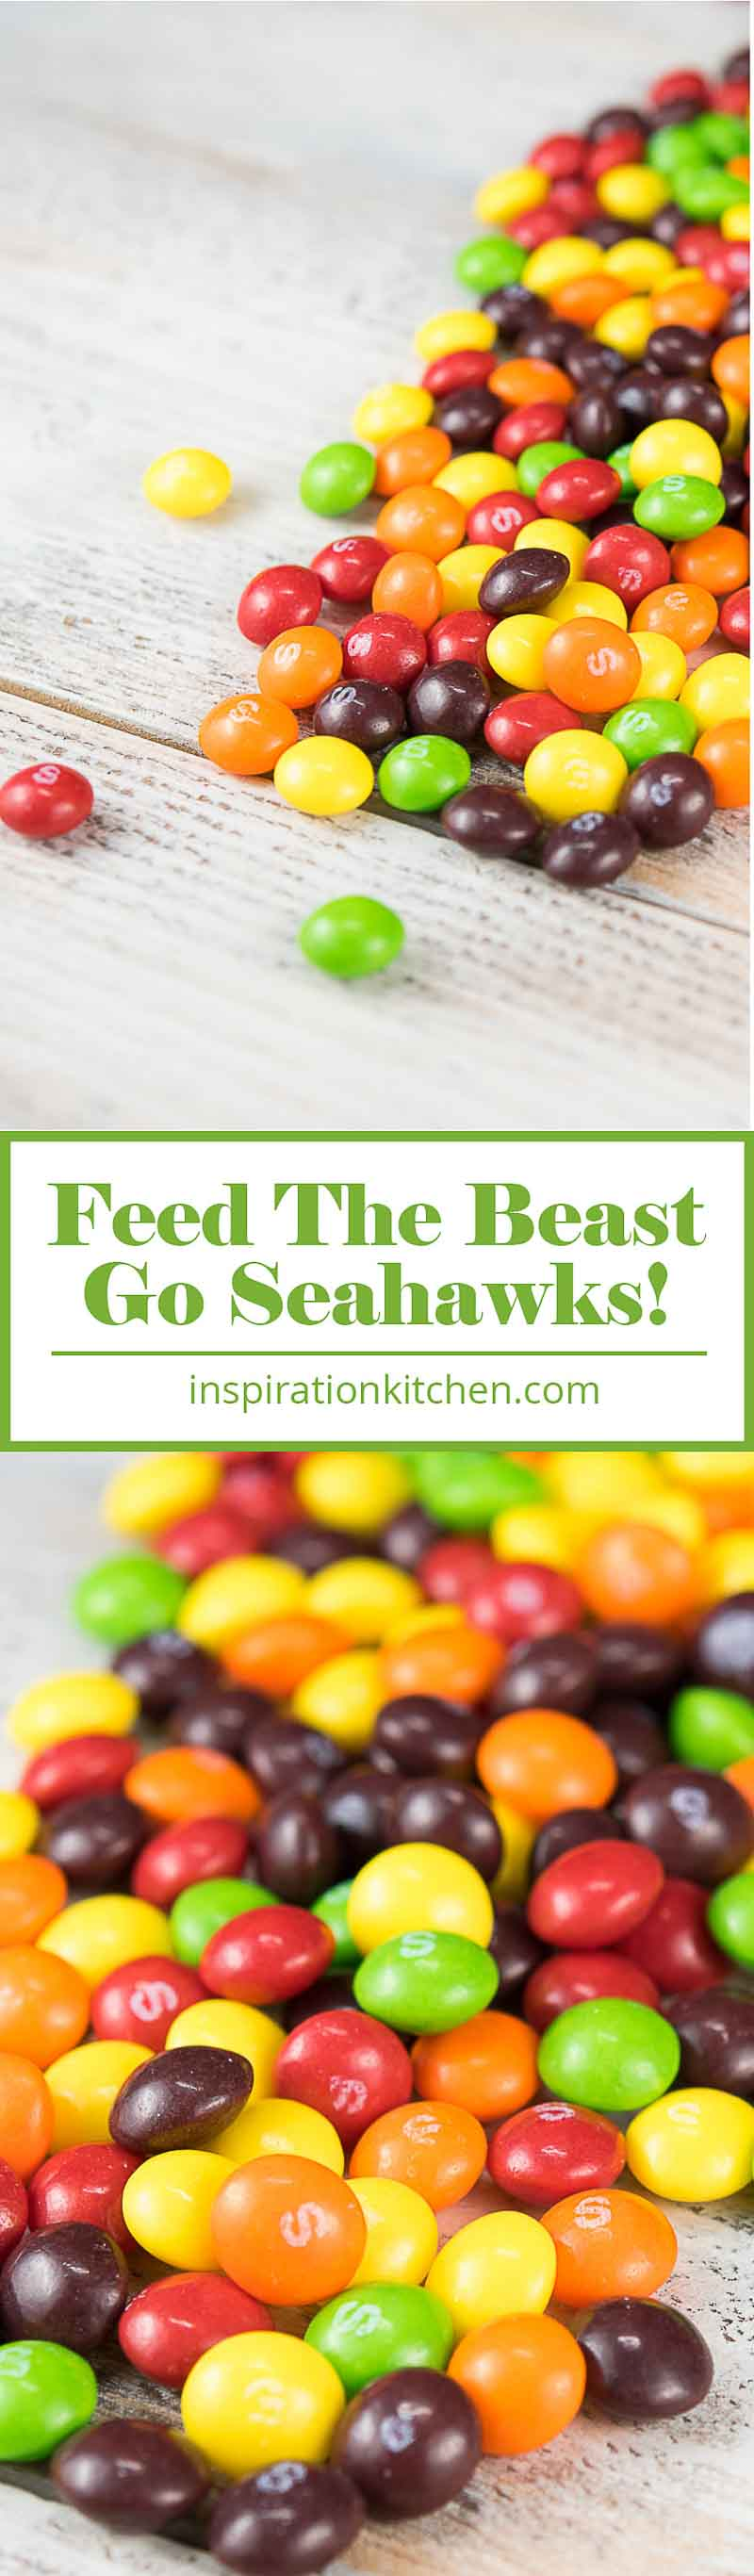 Seahawks Super Bowl 2015 Skittles | Inspiration Kitchen